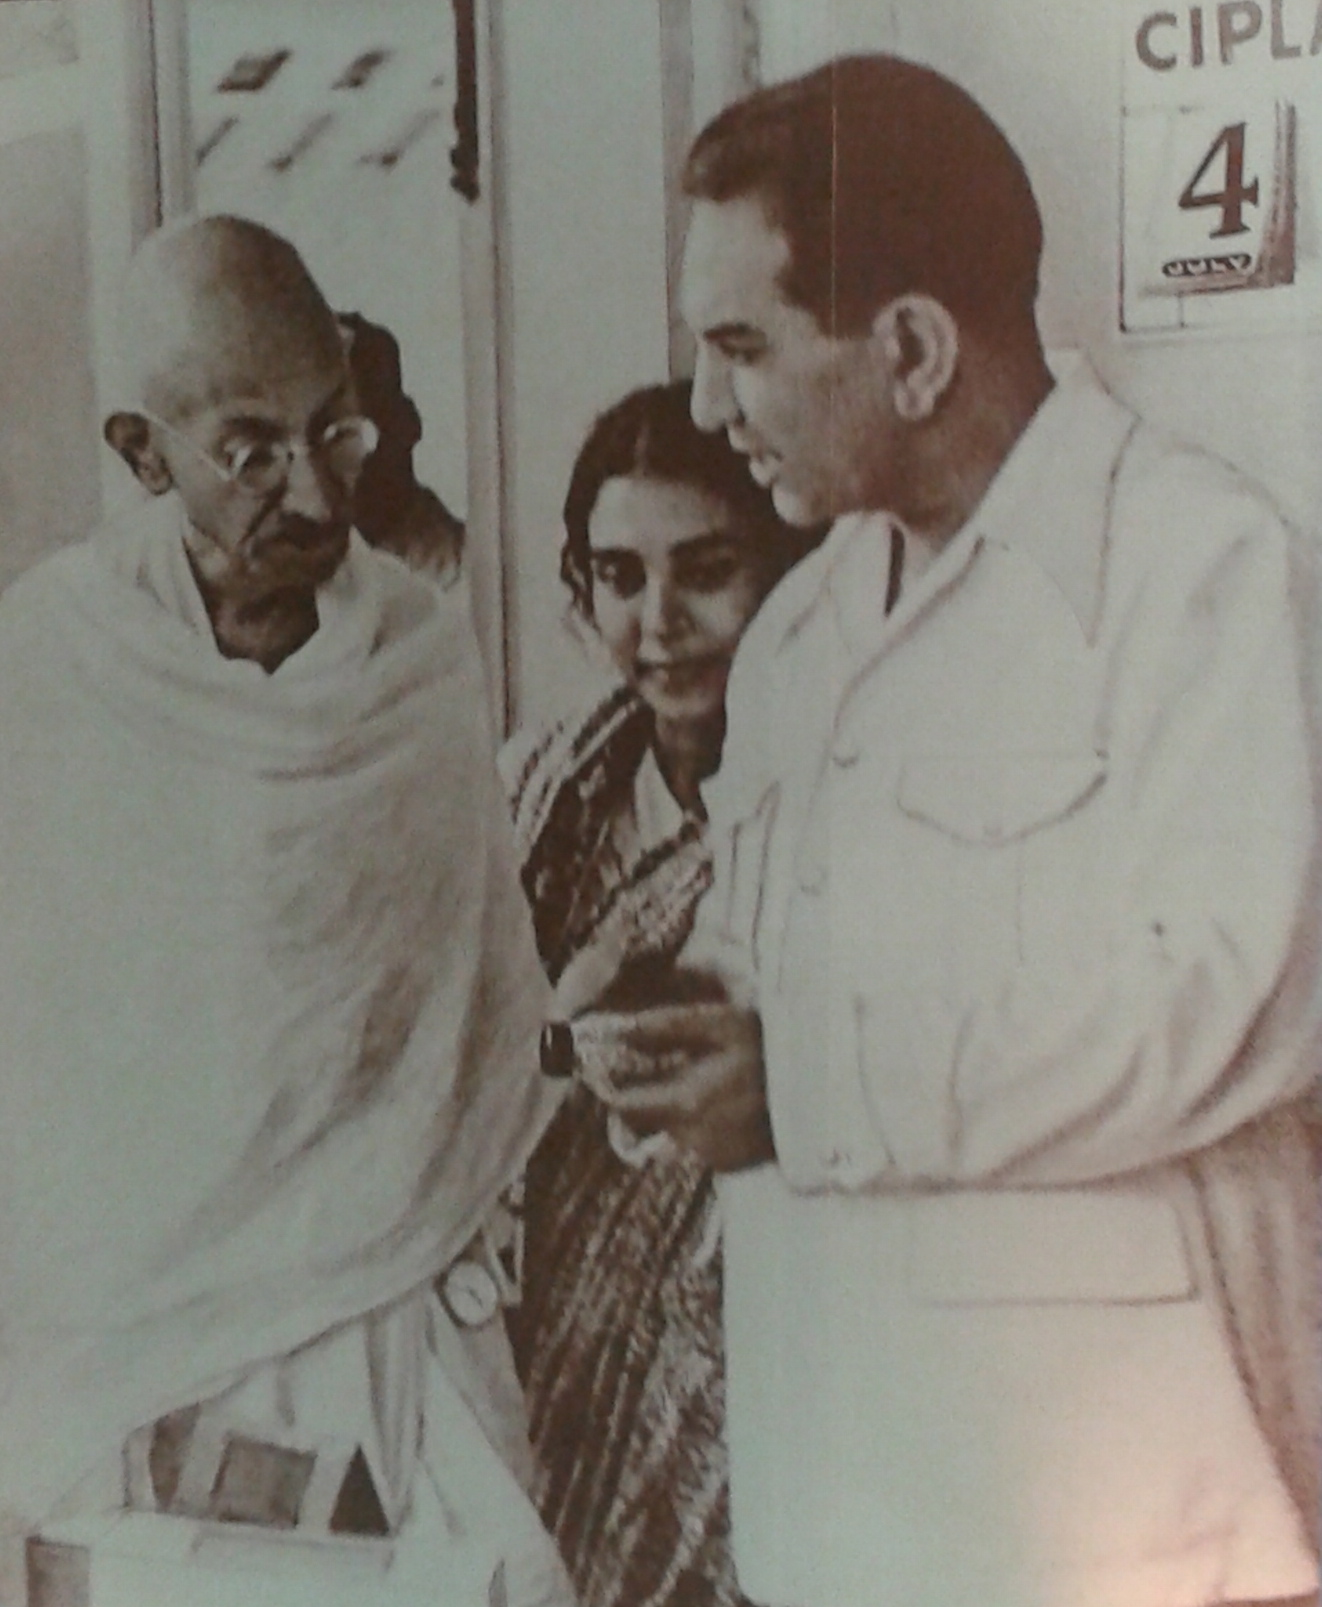 Mahatma Gandhi with Cipla founder KA Hamied during his visit to Cipla in July 1939.